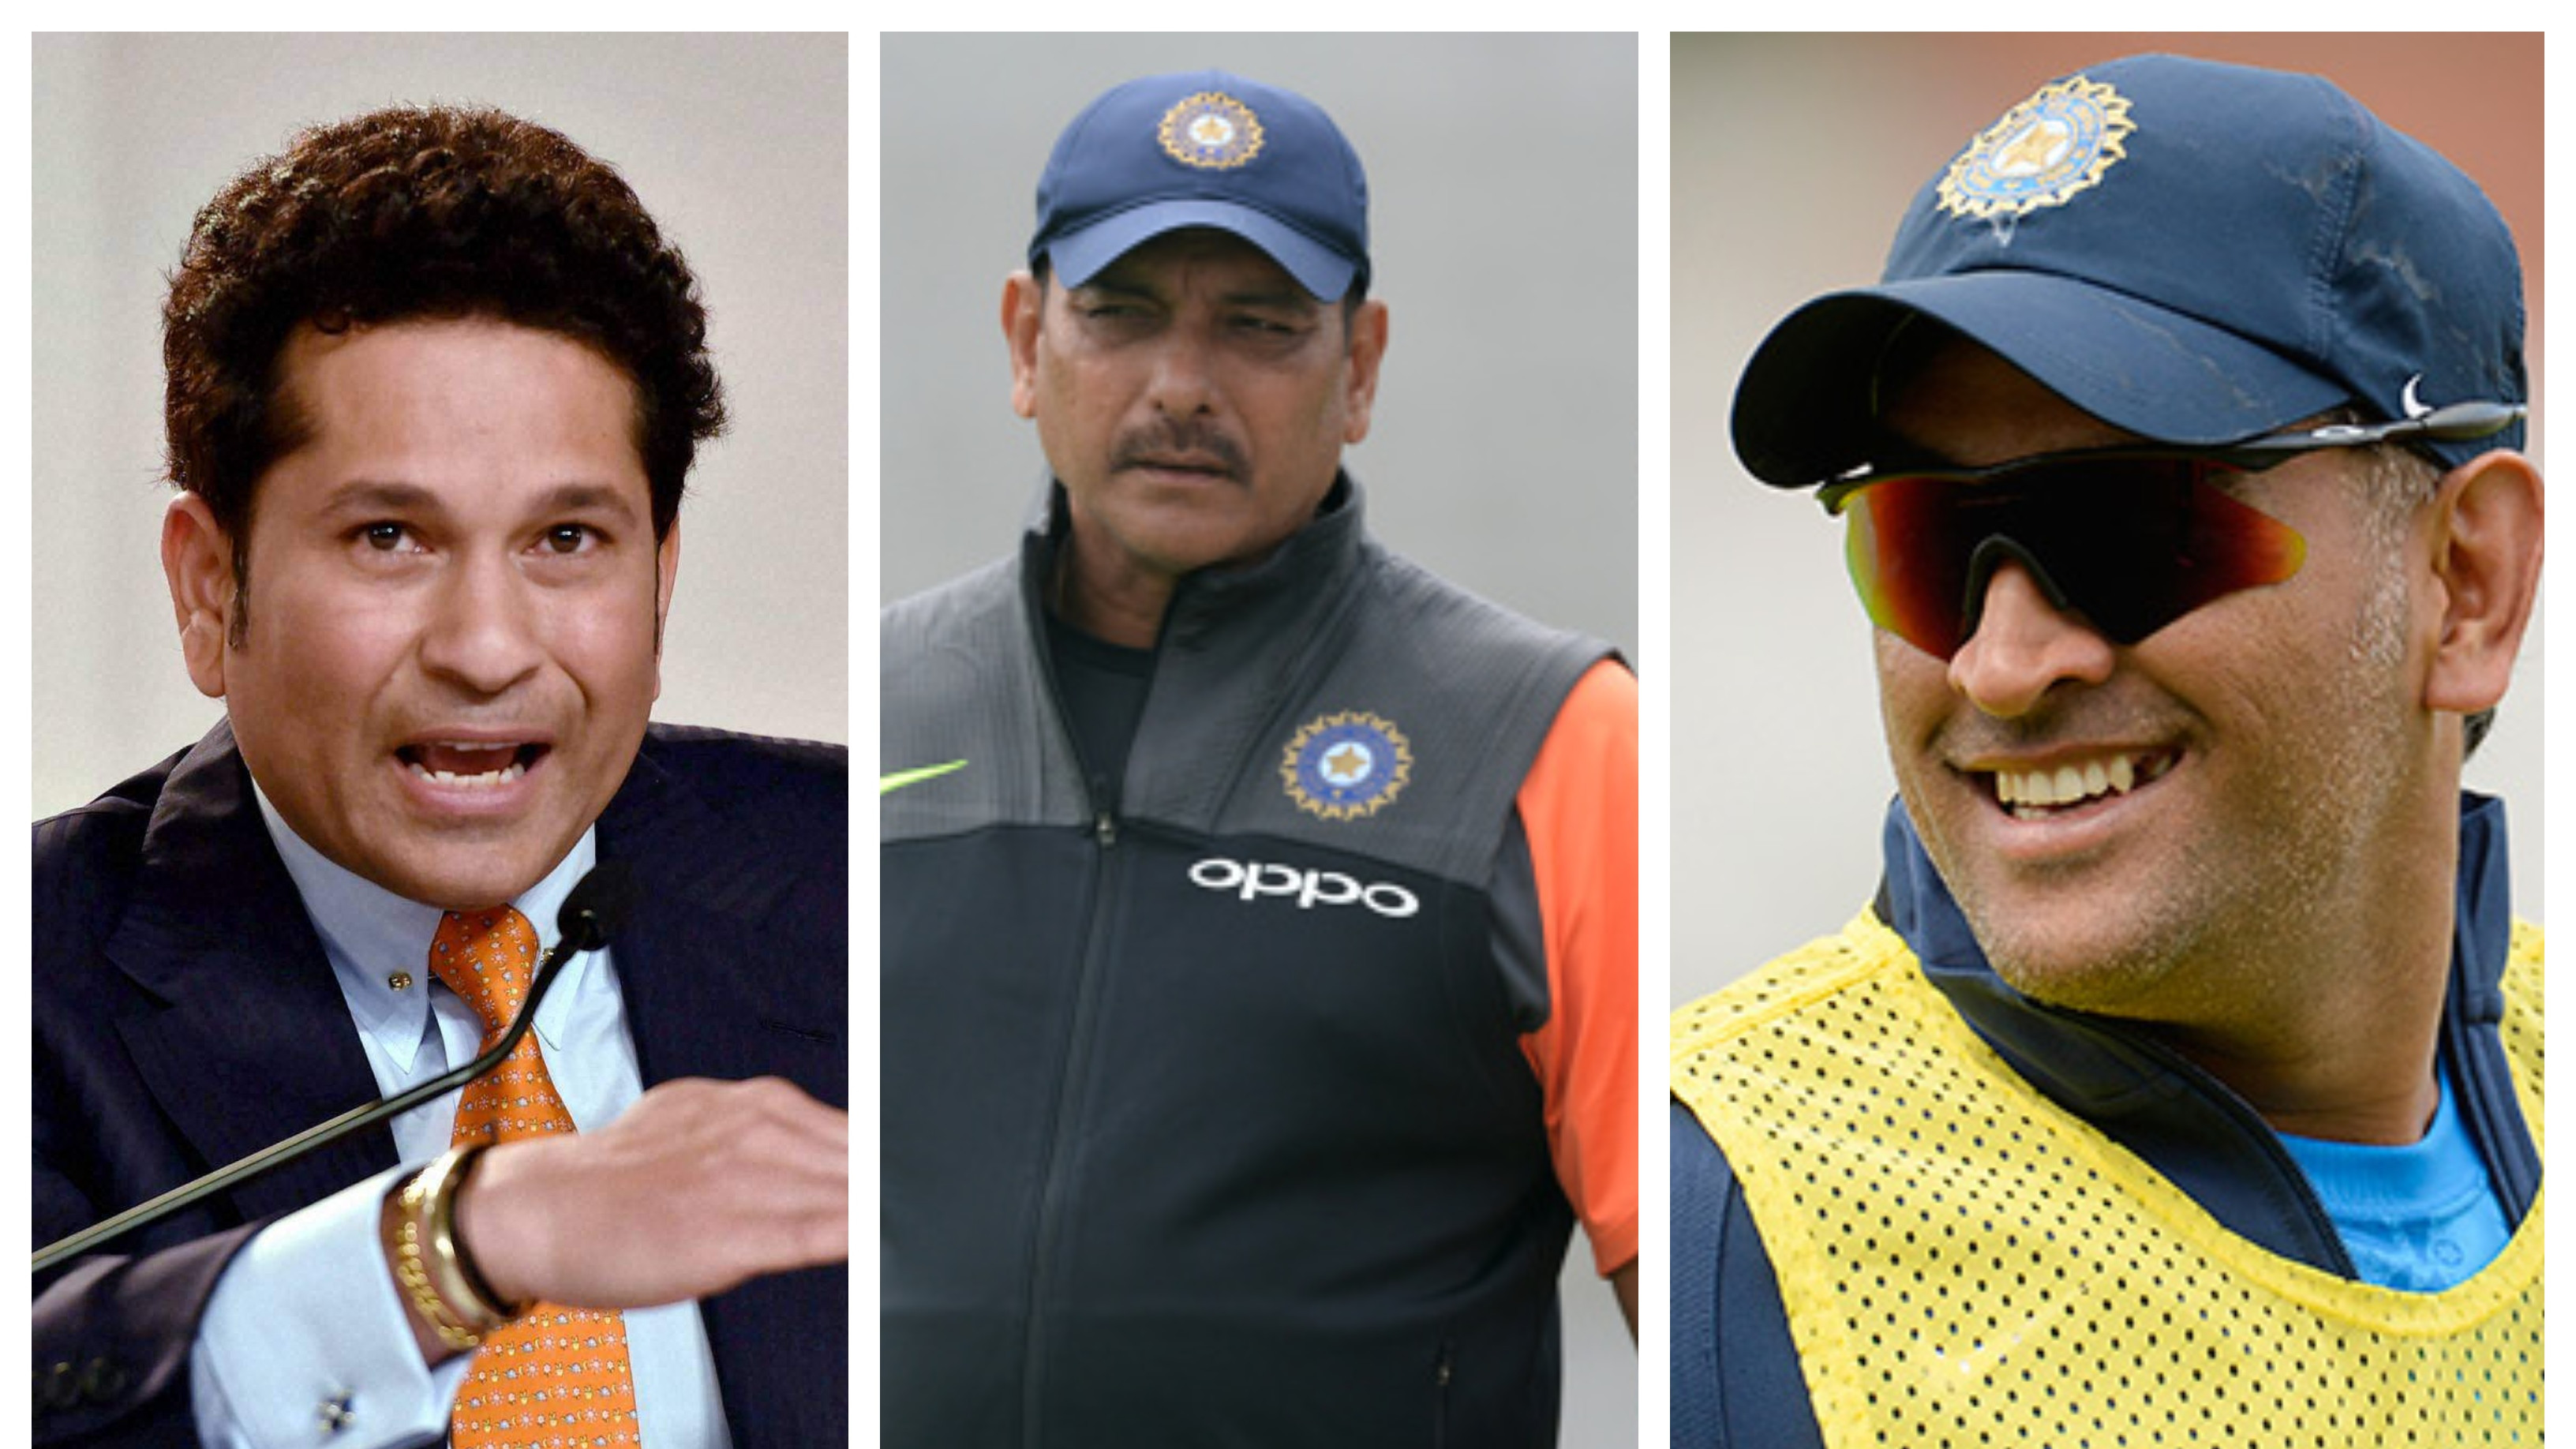 AUS v IND 2018-19: Even Tendulkar has got angry but not MS Dhoni, says Shastri